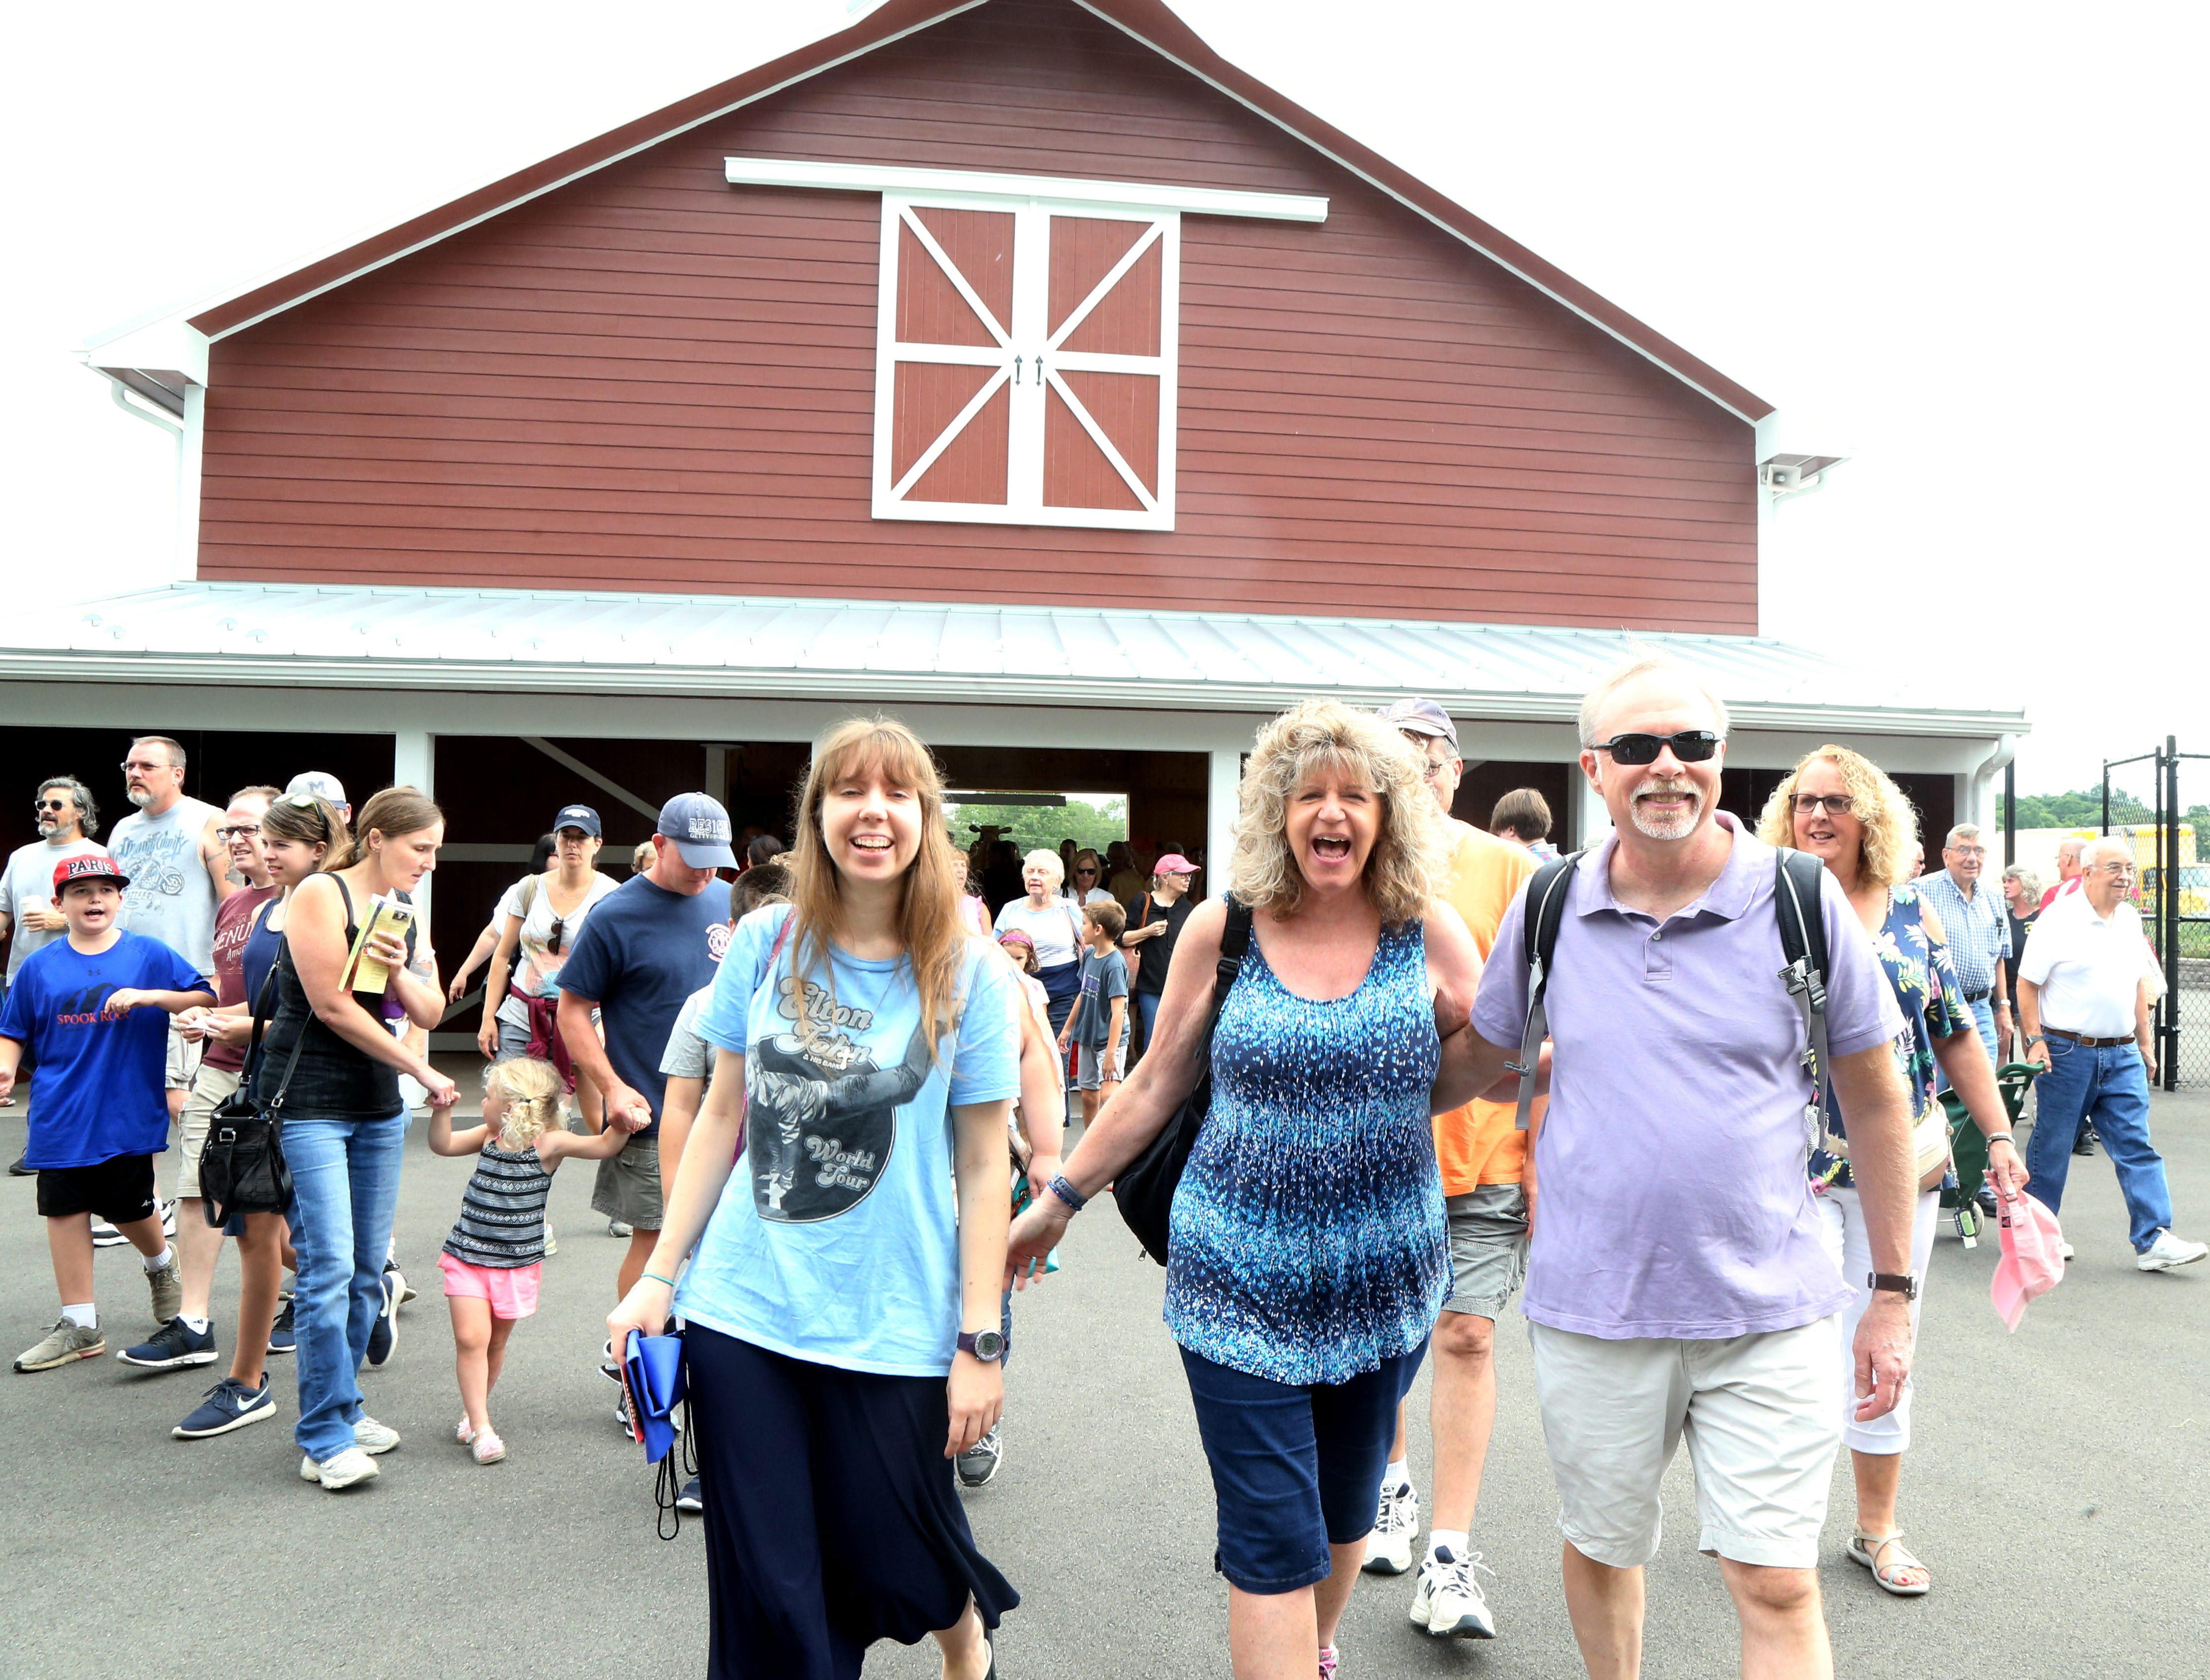 From left Liz, Chris and Bill Fitzpatrick of Poughkeepsie enter the fairgrounds on the opening day of the Dutchess County Fair in Rhinebeck on August 21 2018.